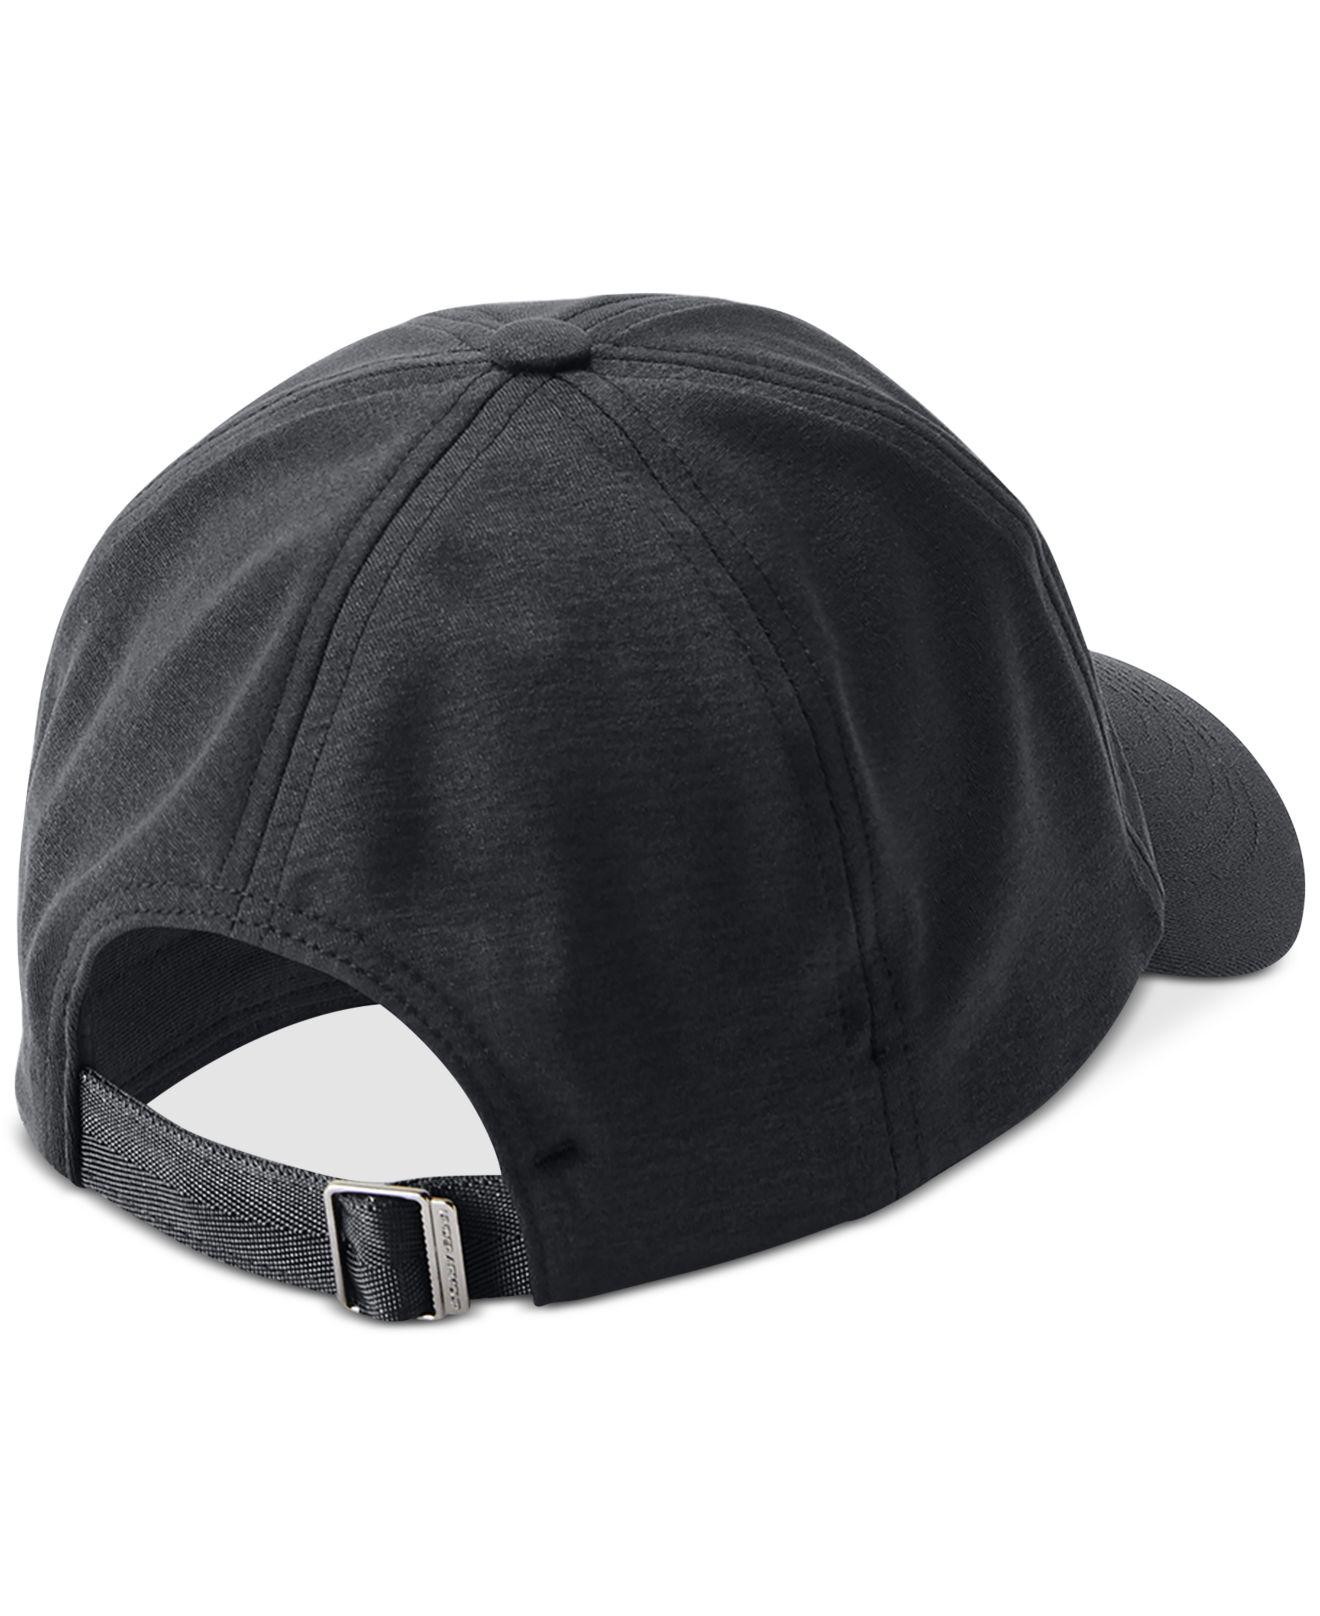 39106358872 Lyst - Under Armour Ua Renegade Free Fit Cap in Black - Save 28%